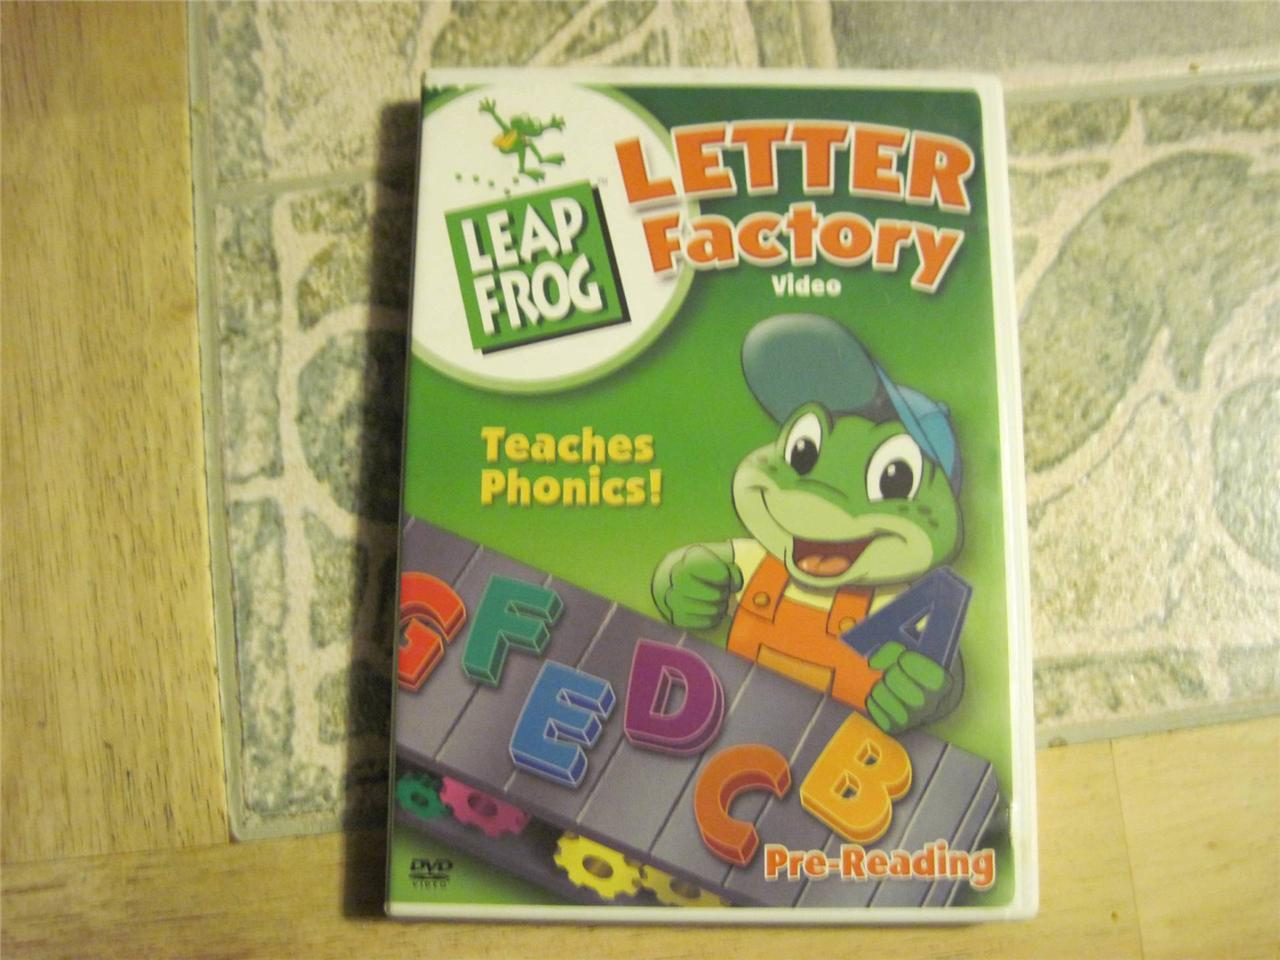 Details about LeapFrog Letter Factory DVD